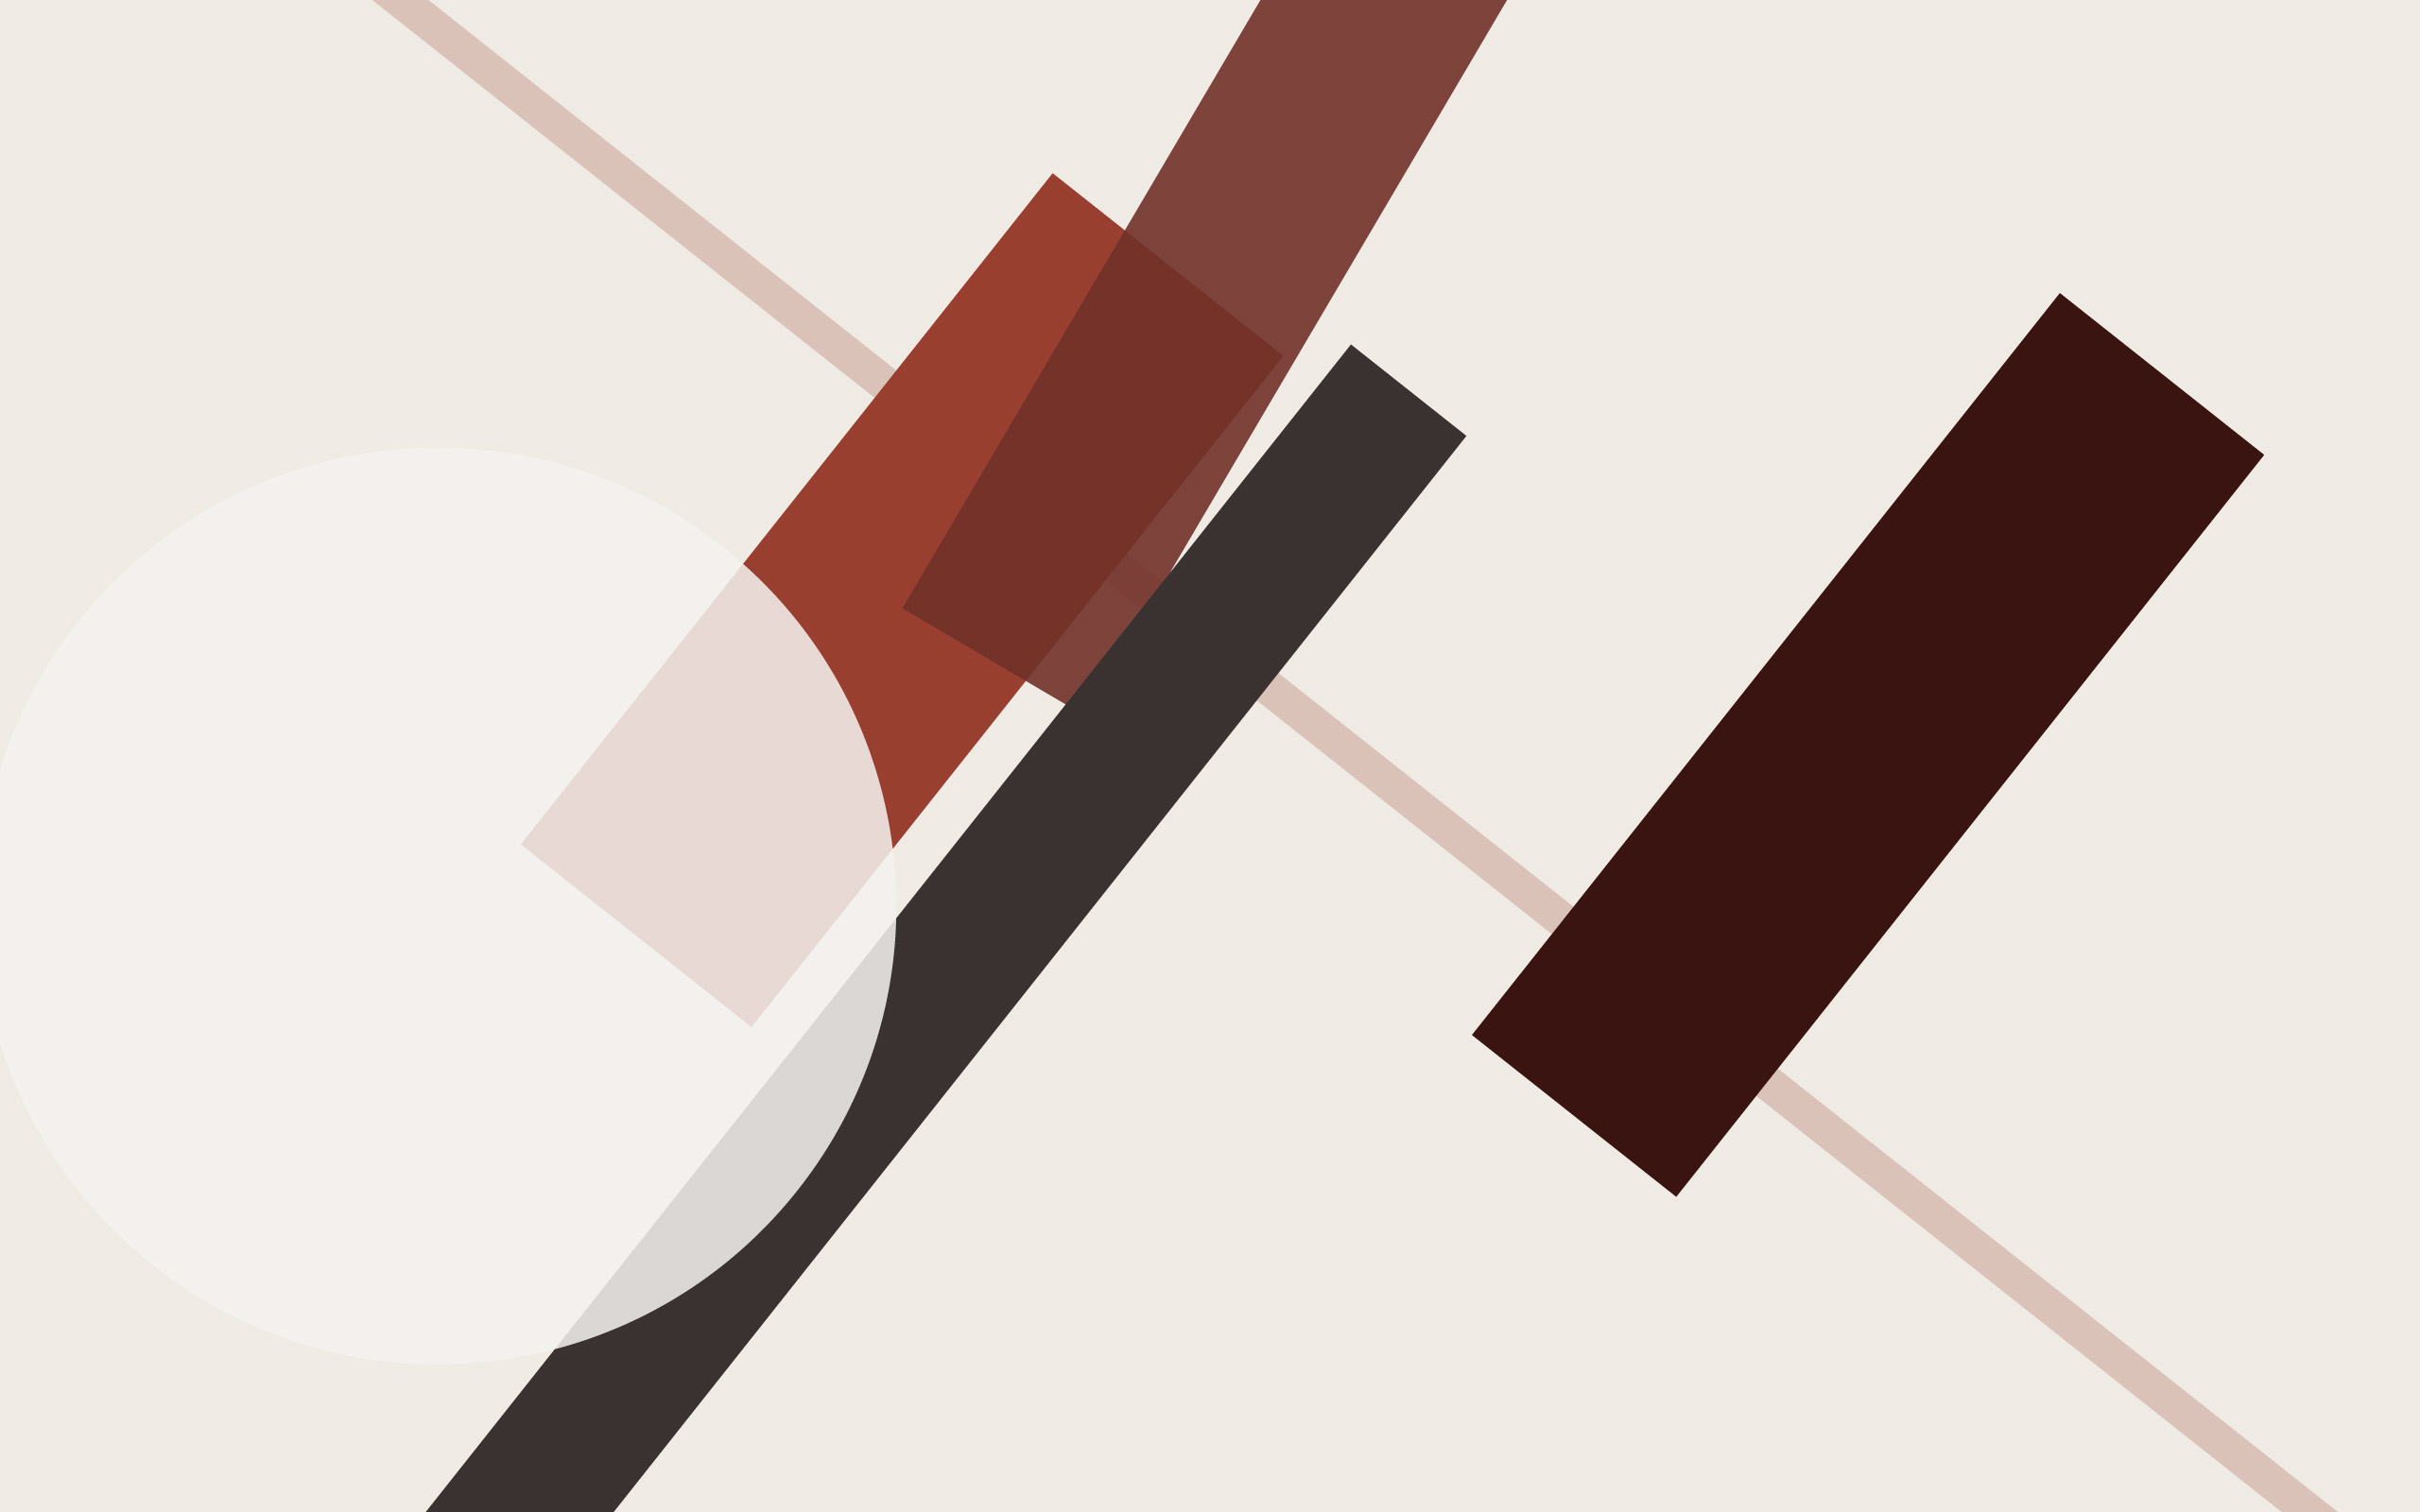 Bauhaus free desktop wallpapers for widescreen hd and for What is a minimalist